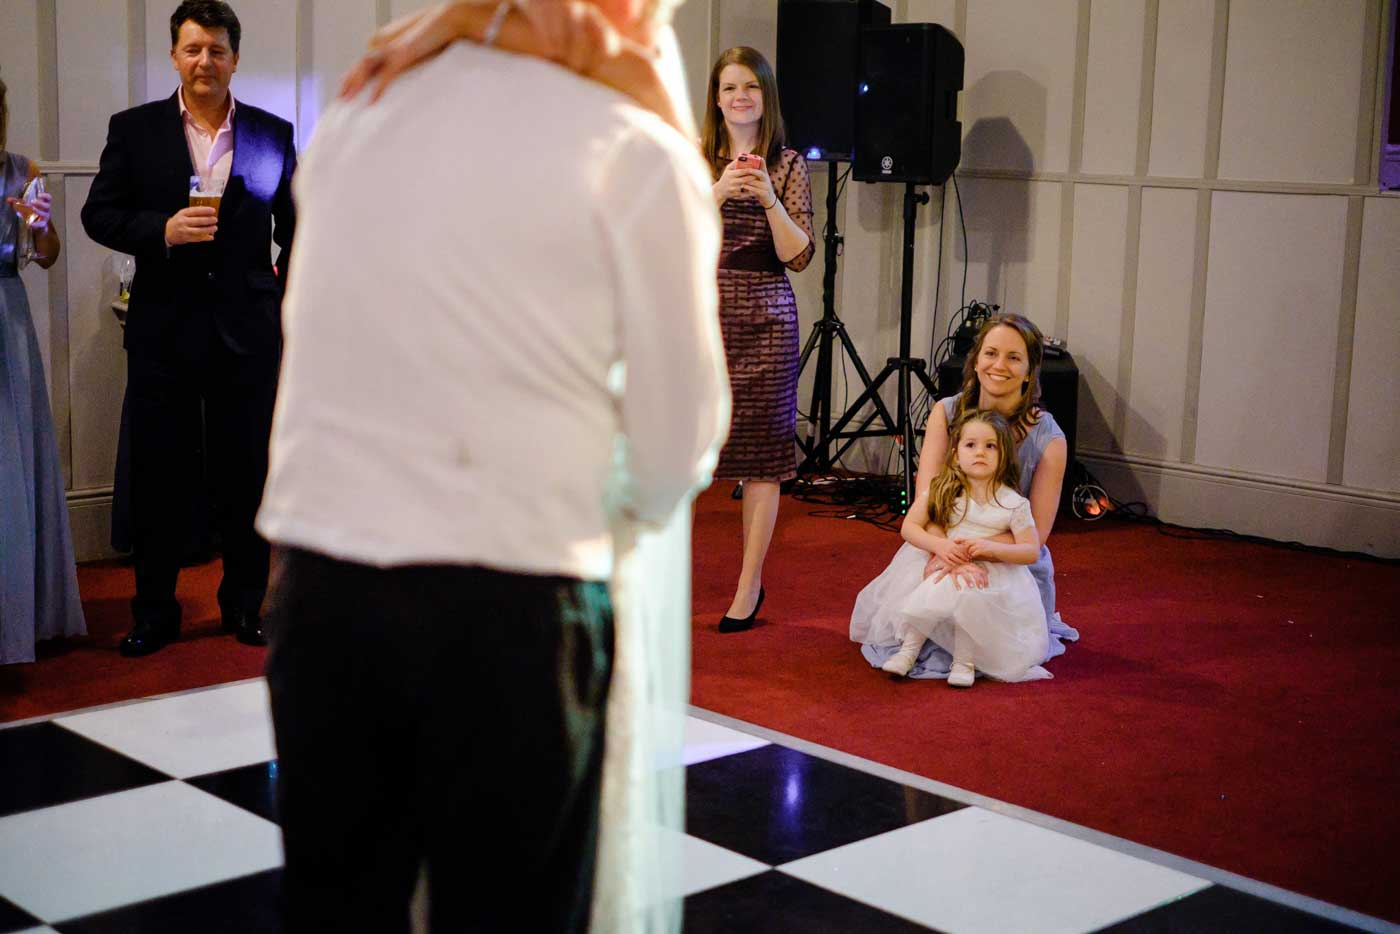 Maid and flowergilr watching bride and groom during their first dance by Stanbrook Abbey wedding photographer Clive Blair Photography